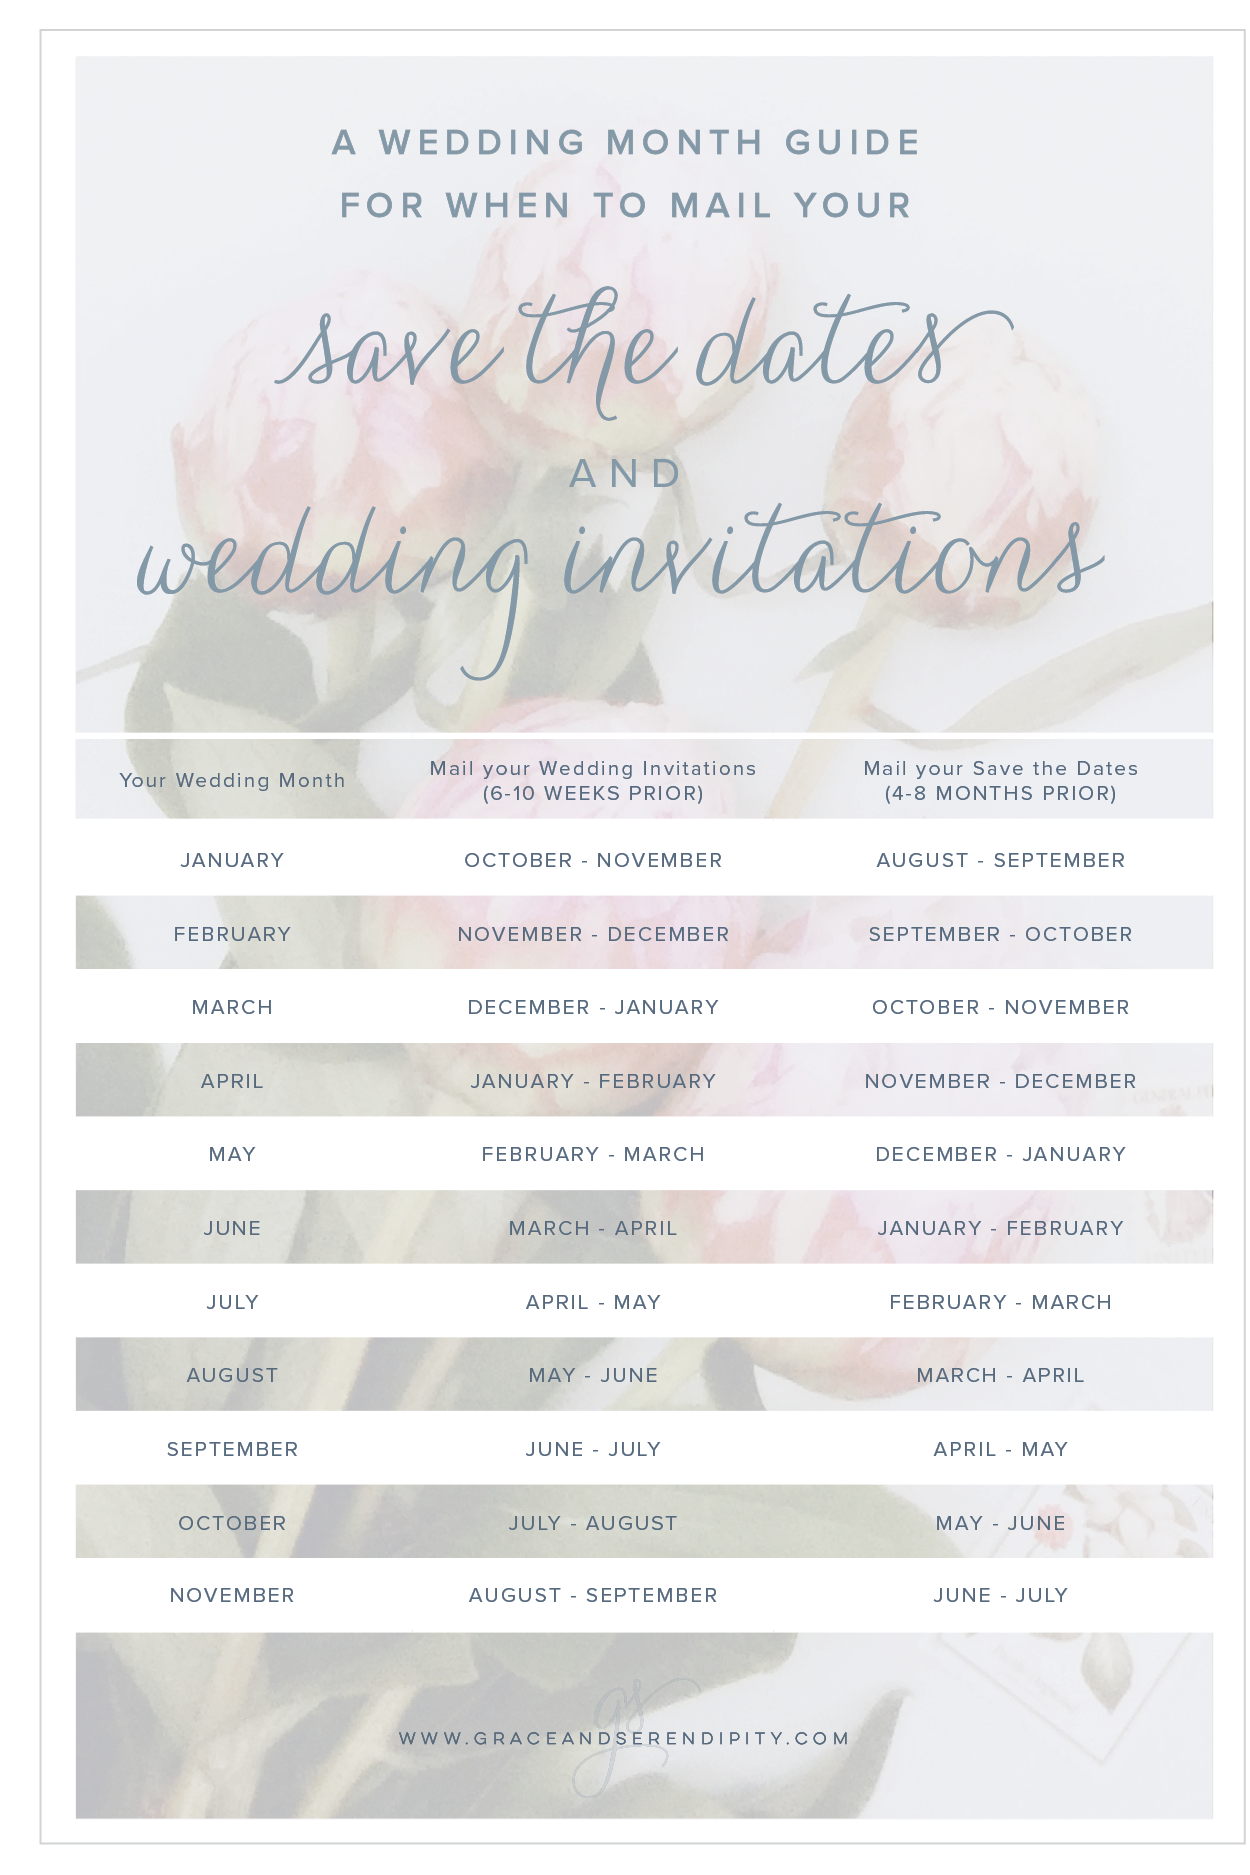 When to Mail Your Save the Dates and Wedding Invitations - by Grace and Serendipity